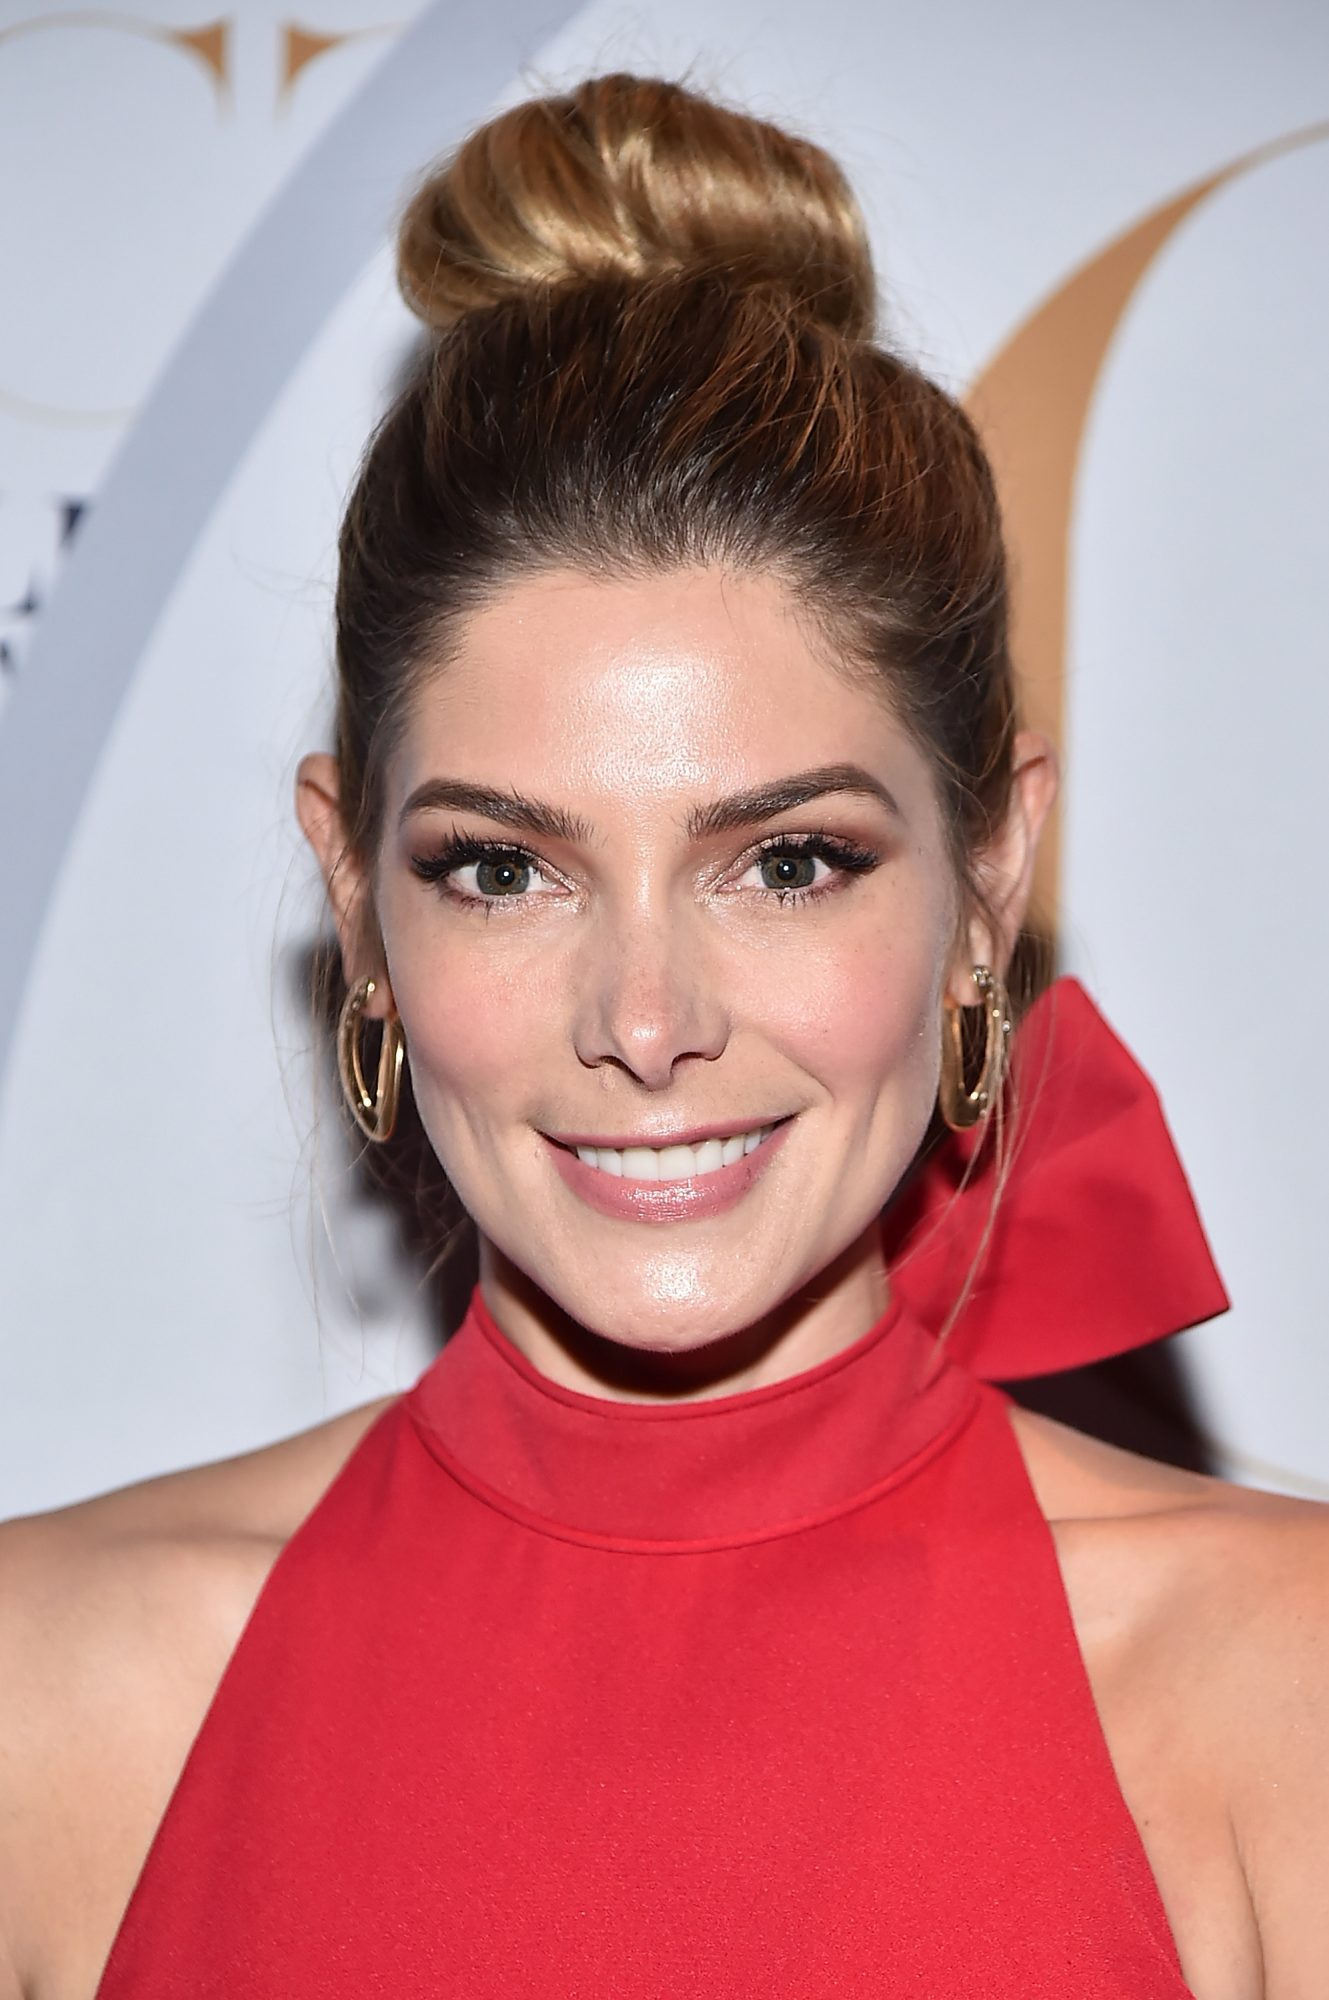 Ashley Greene Just Got Married, and Her Wedding Dress Is Seriously Stunning